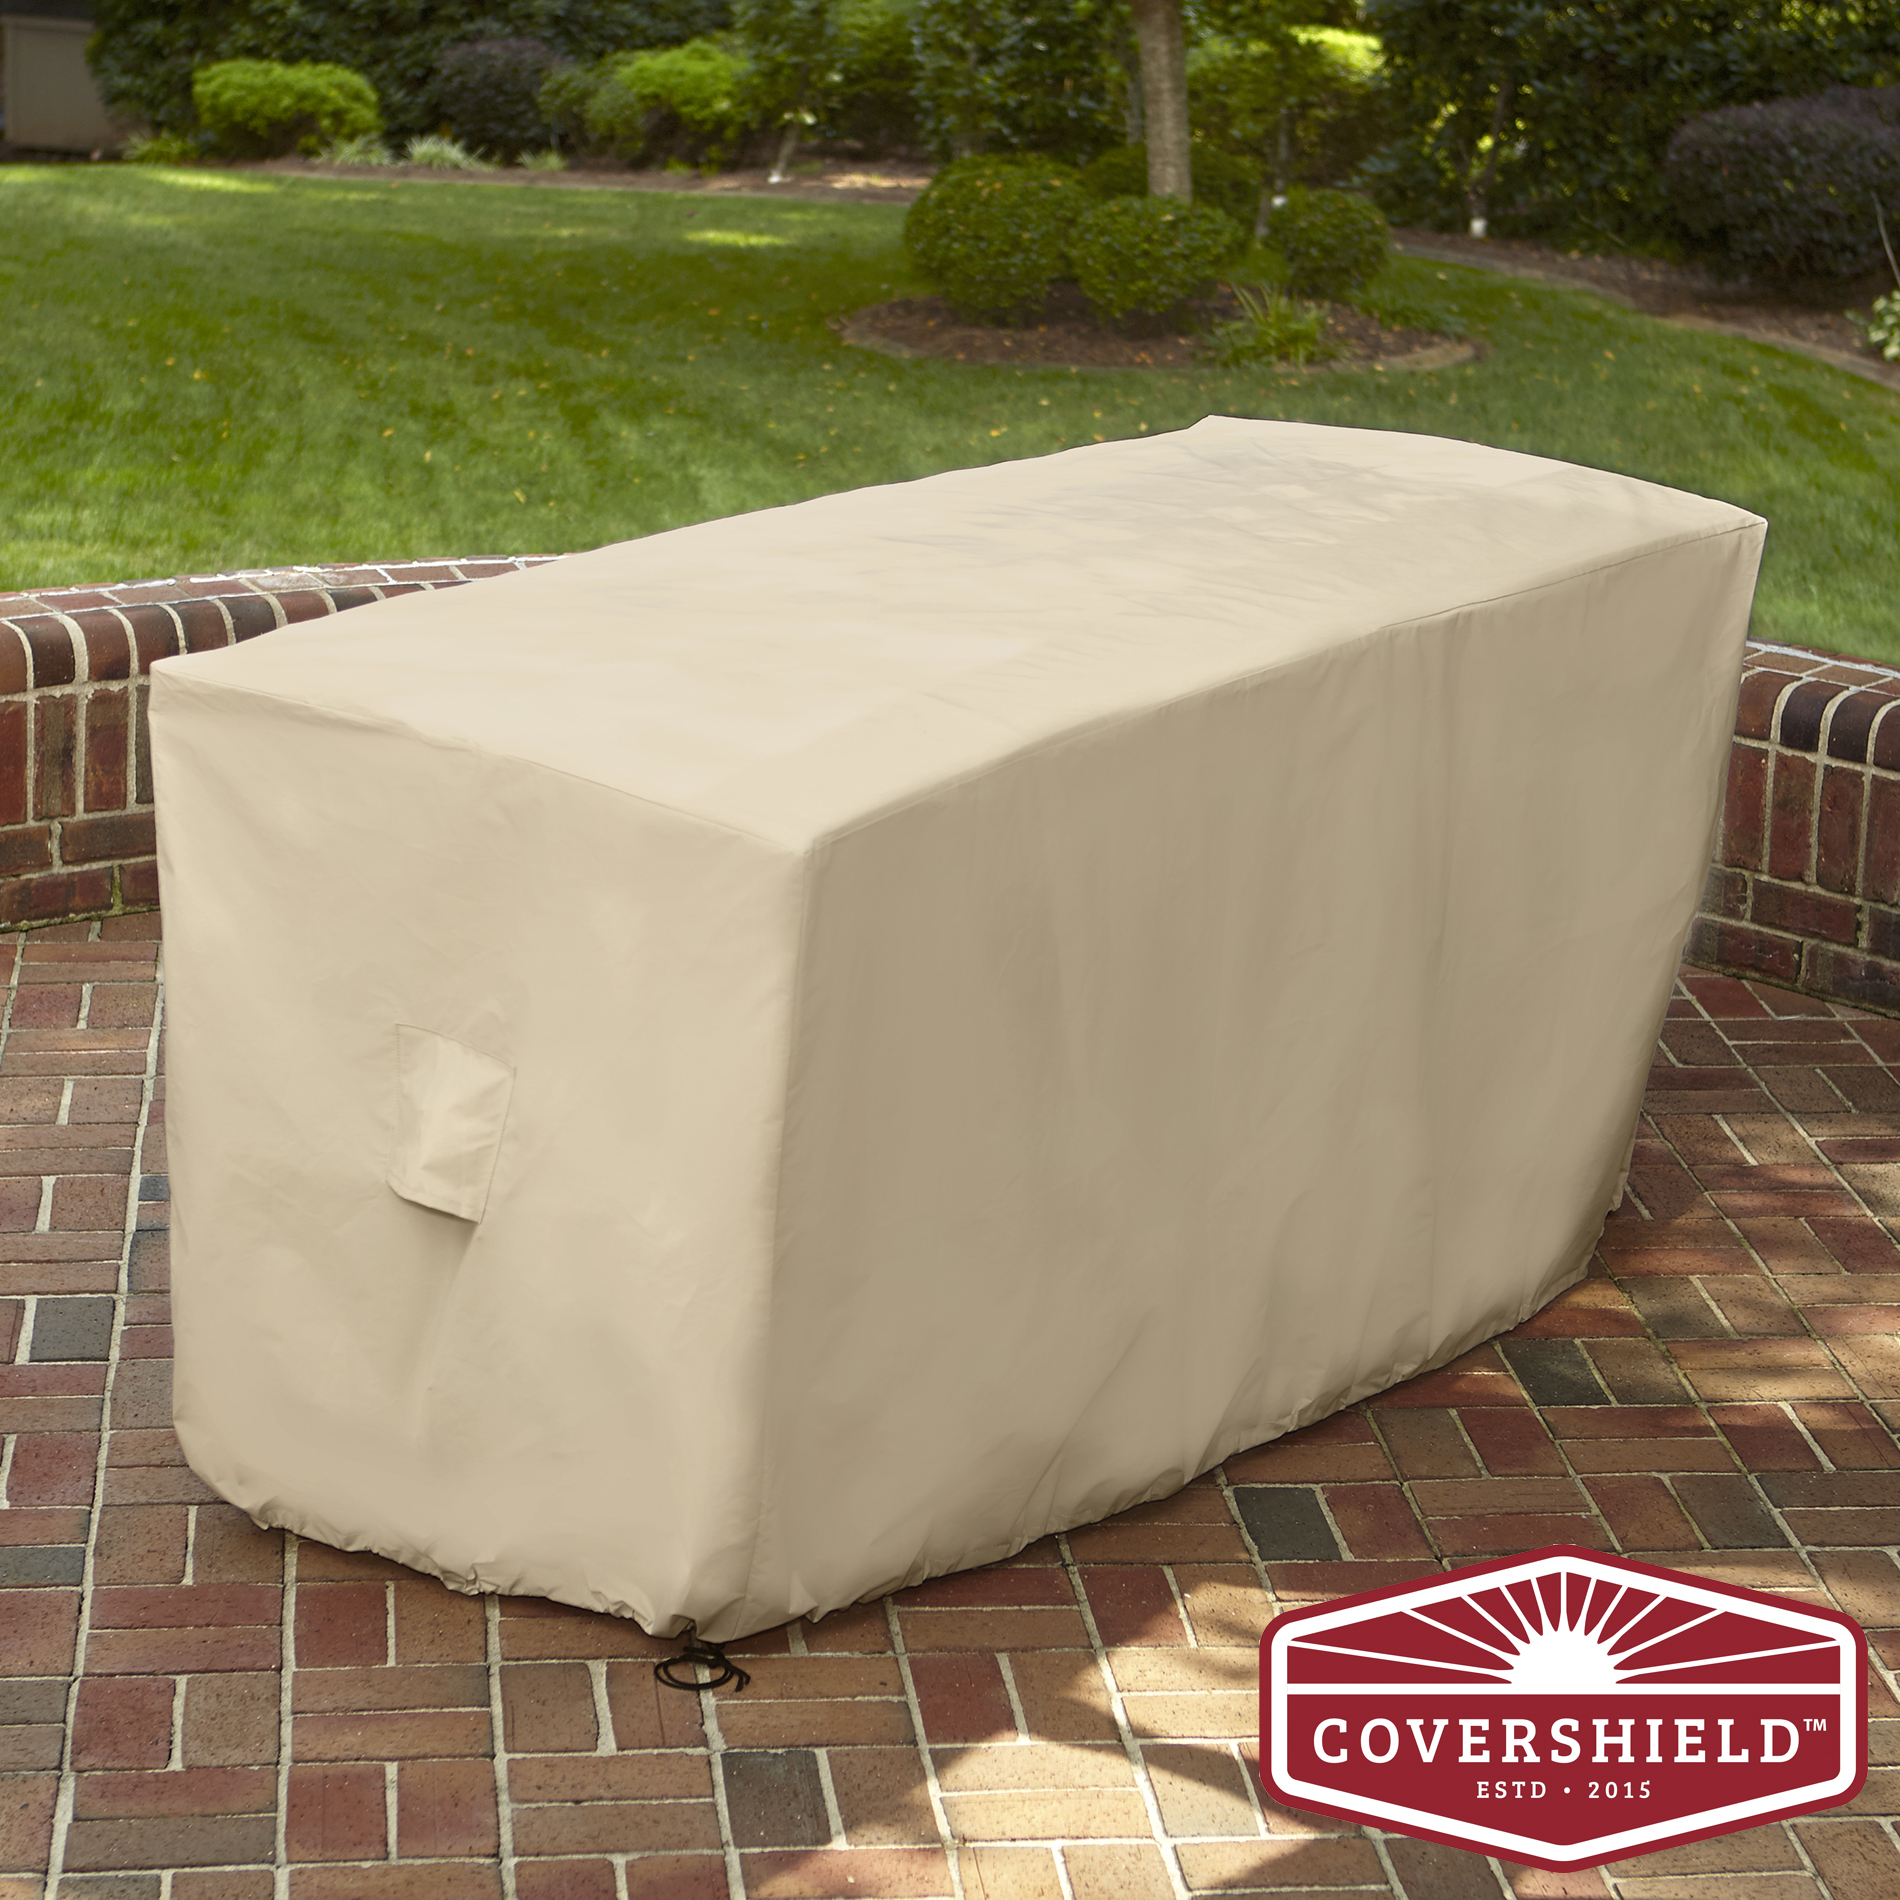 Covershield Bistro Cover- Basic - Outdoor Living Patio